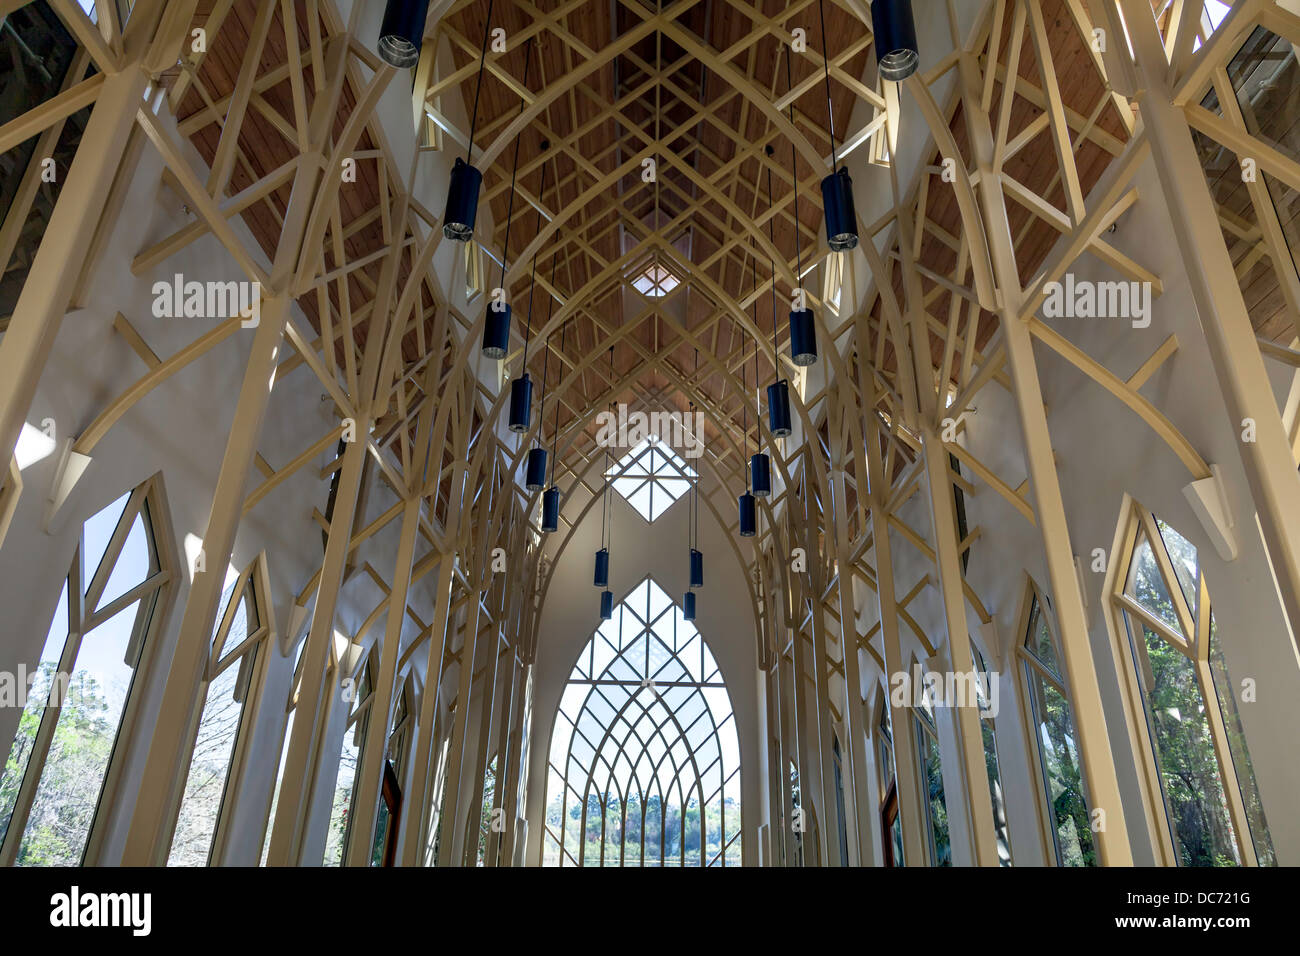 Arched window tubular trusses UF University of Florida Baughman Center Chapel Pavilion at Lake Alice designed by - Stock Image